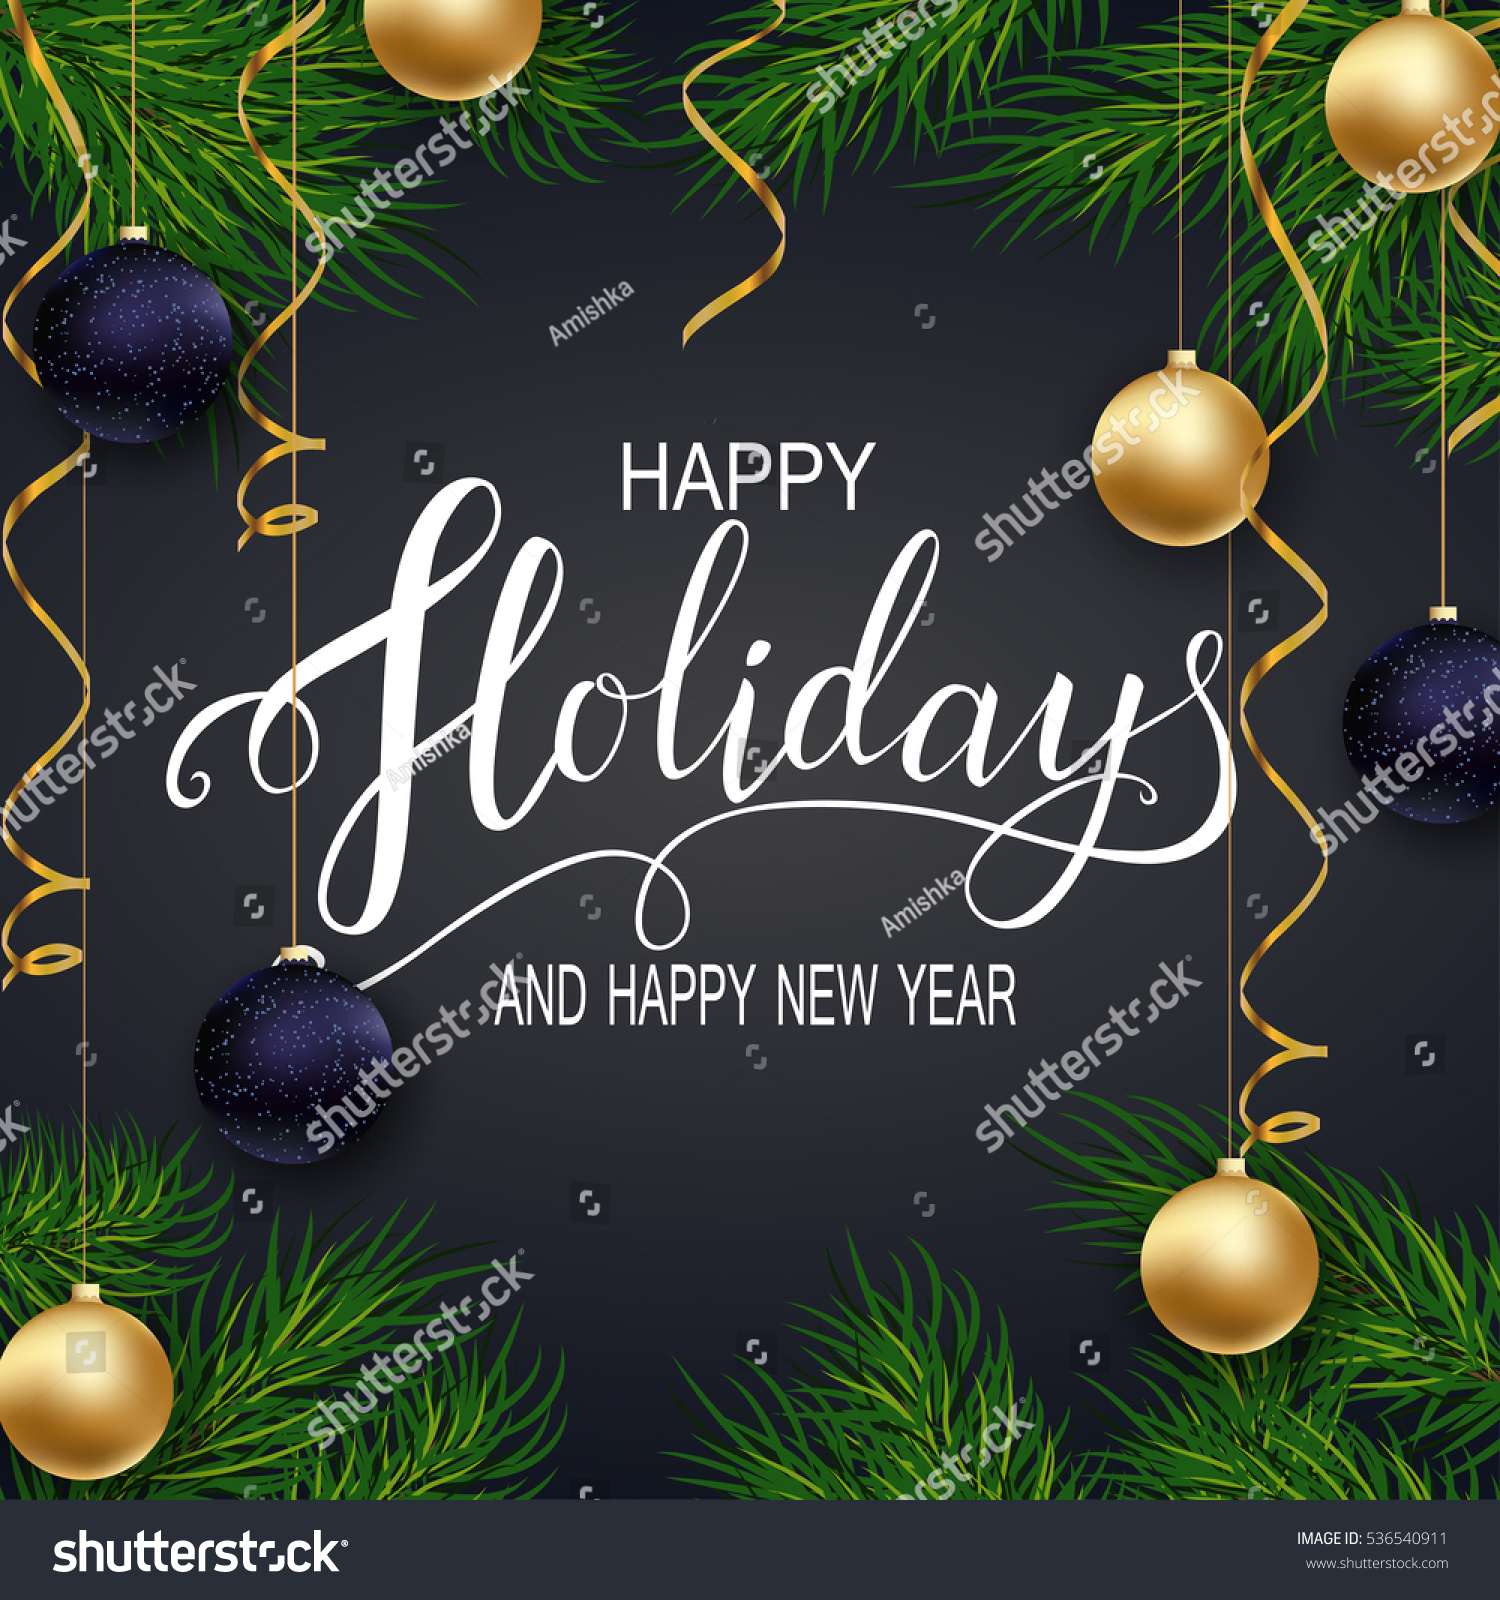 happy new year 2017holidays greeting card for winter happy holidays fir tree